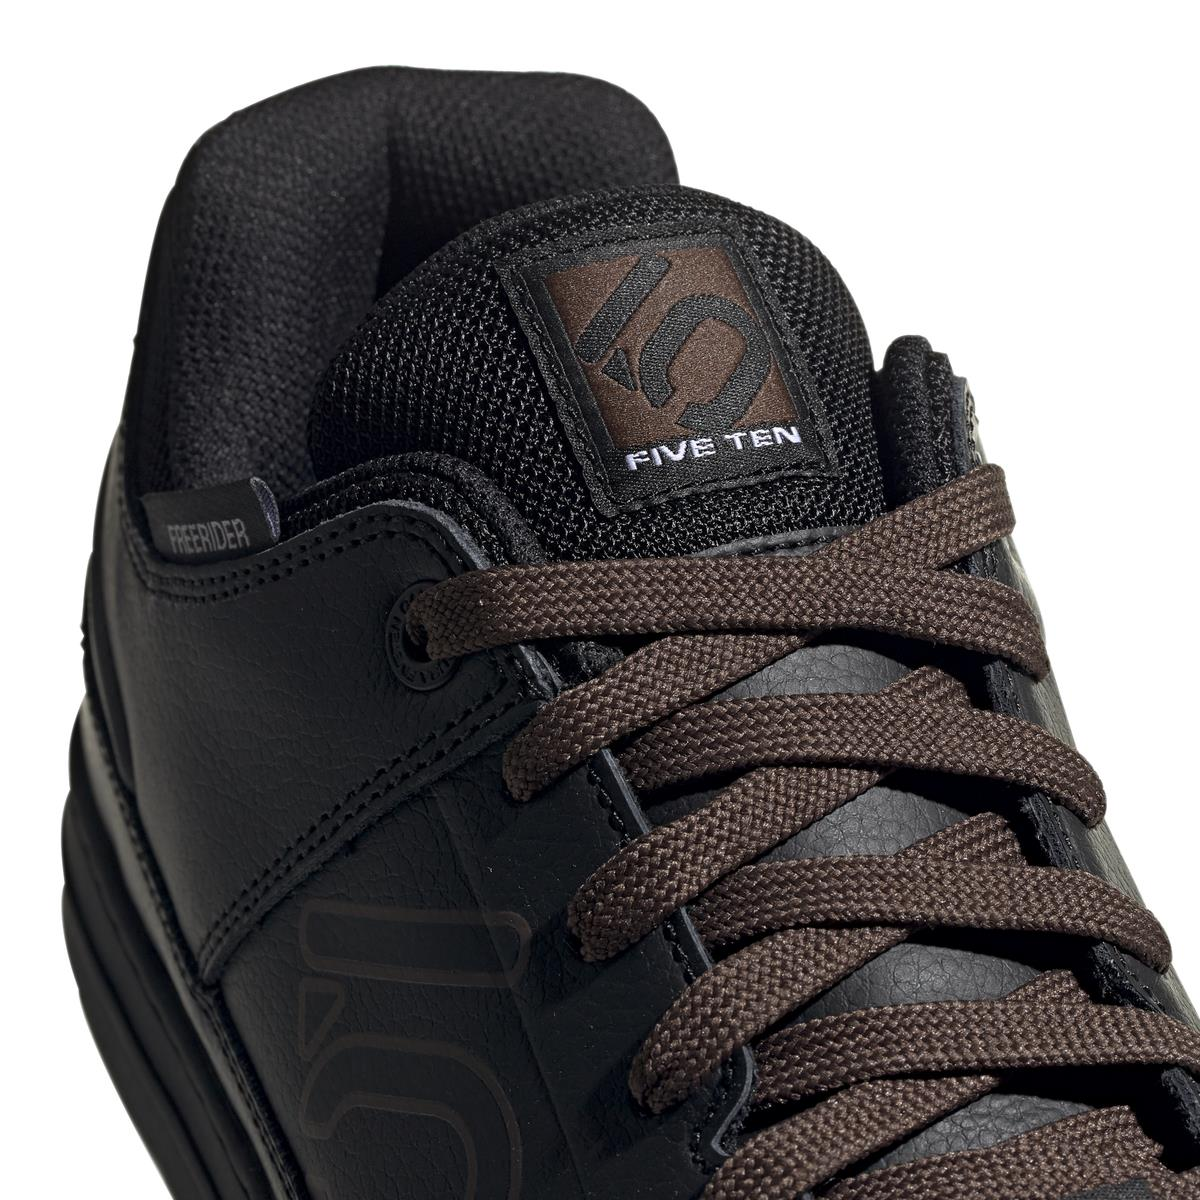 Five Ten Mtb Chaussures Freerider EPS Core Black//Brown//Ftwr White